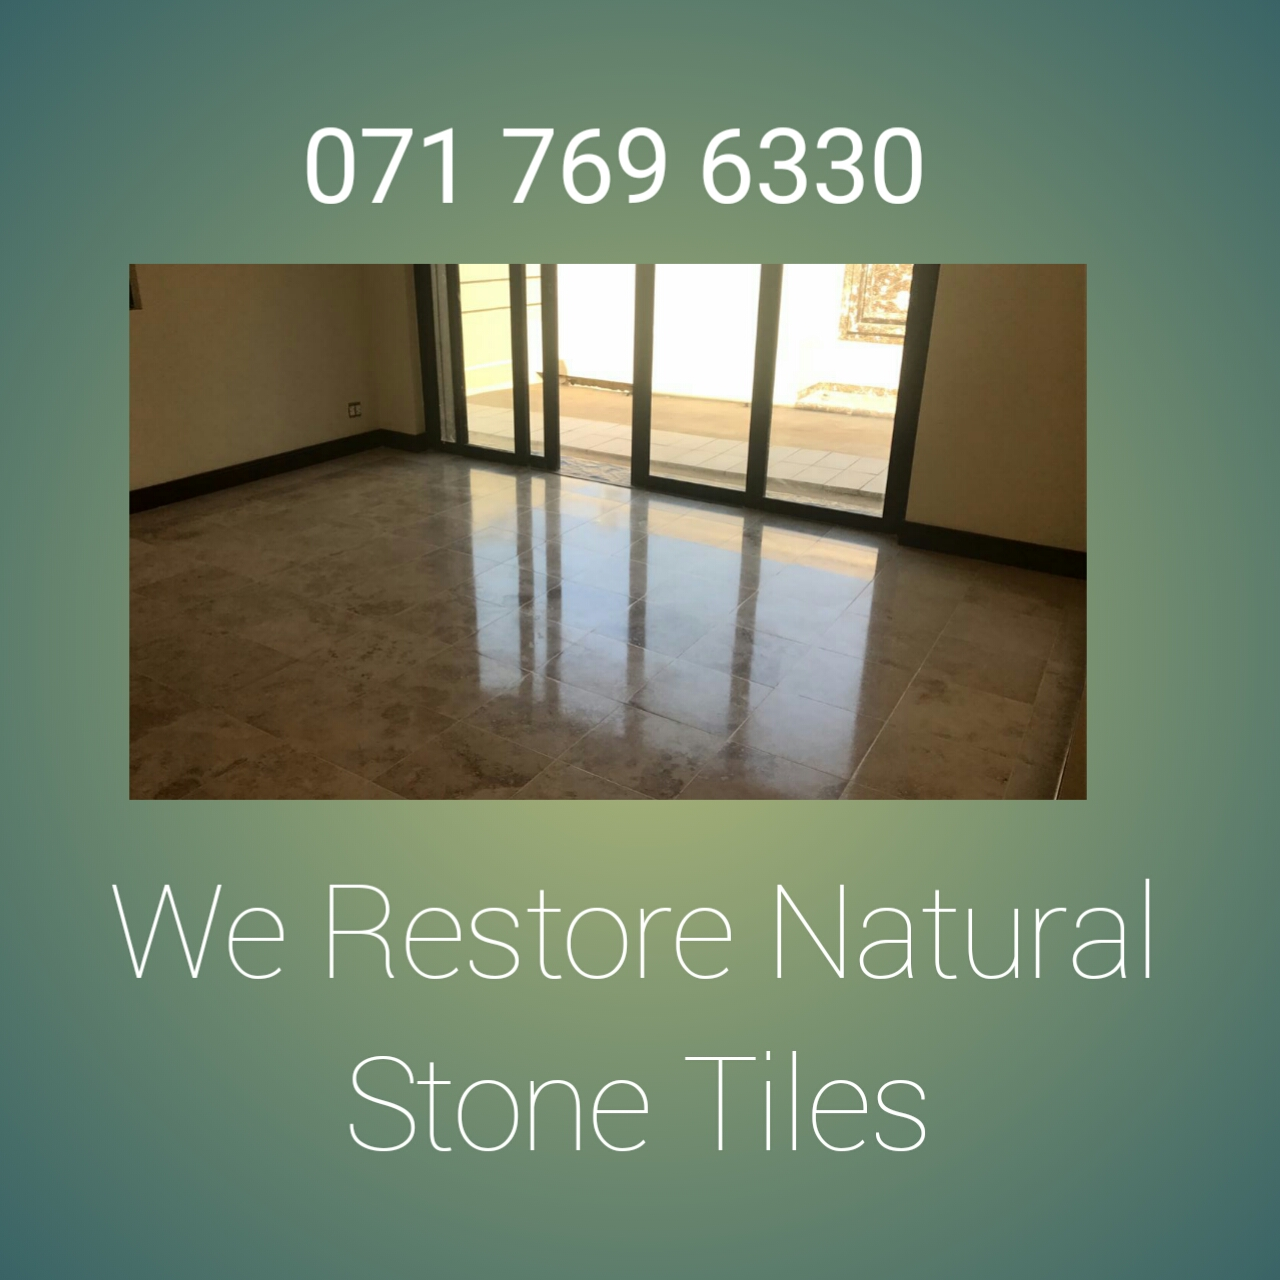 Marble Terrazzo And Travertine Restoration And Sealing